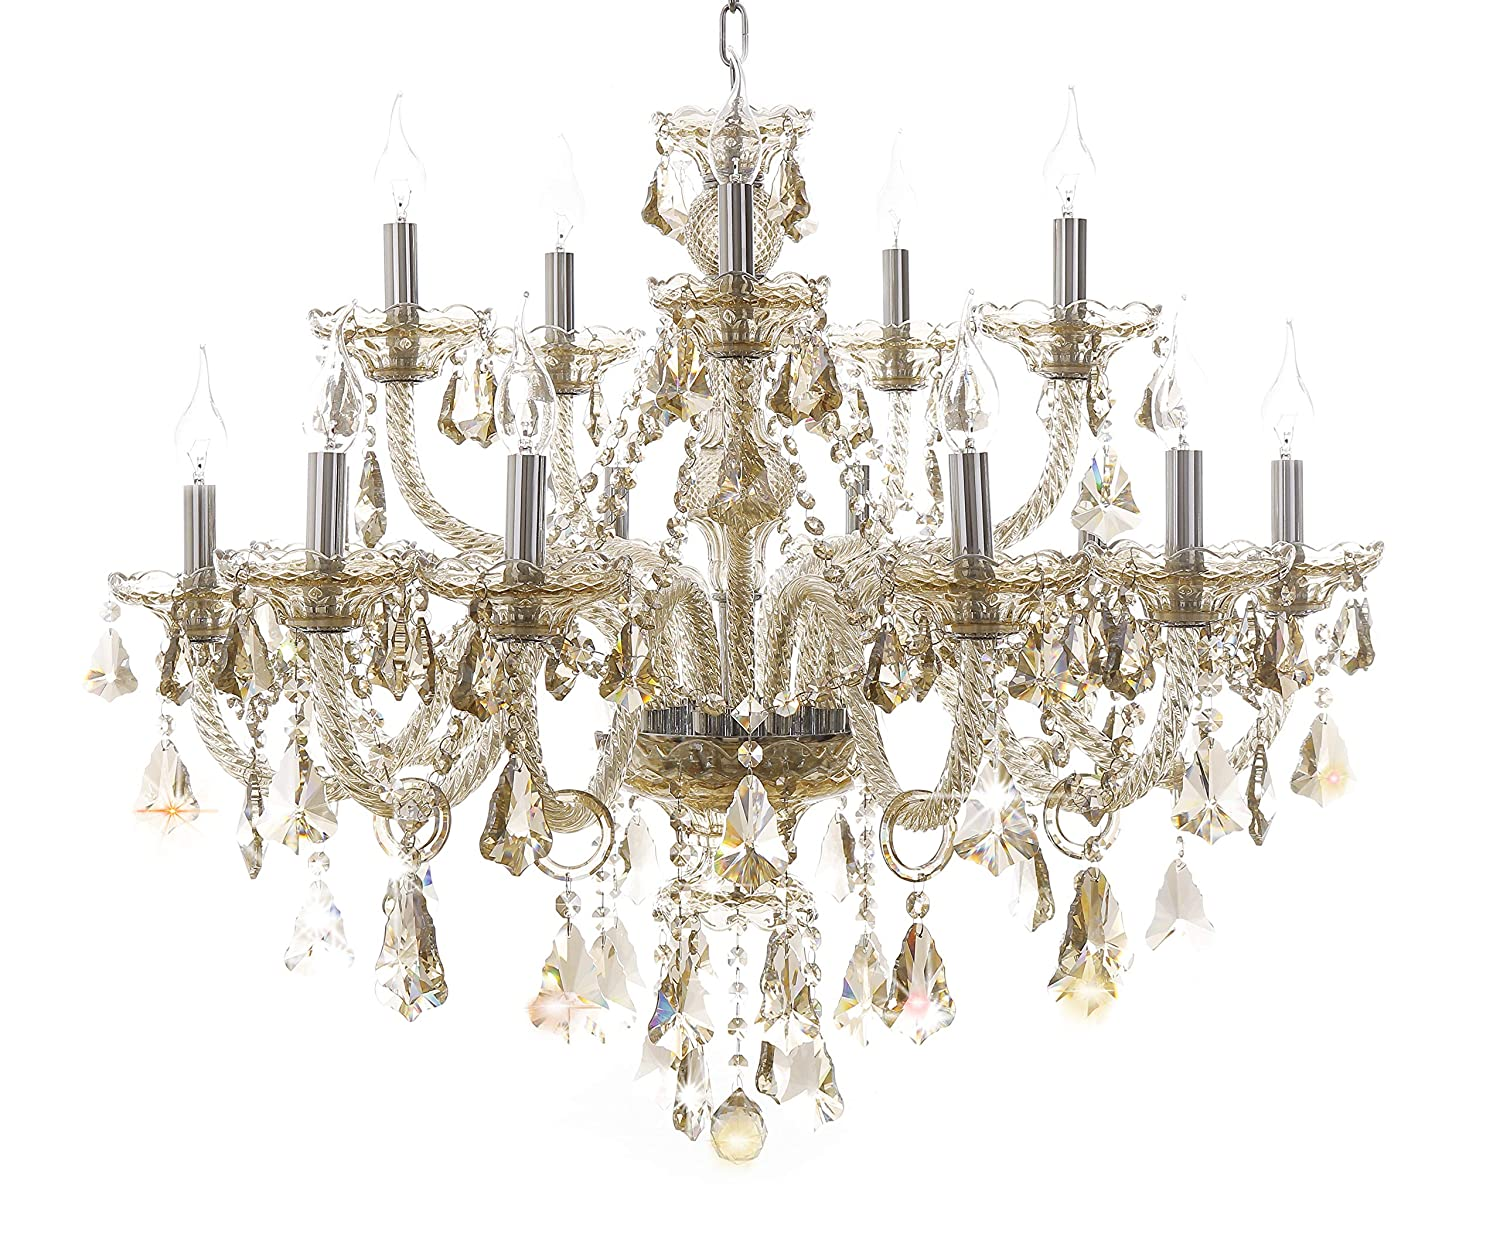 Generic Island Lights Crystals Chandelier 15 Lights